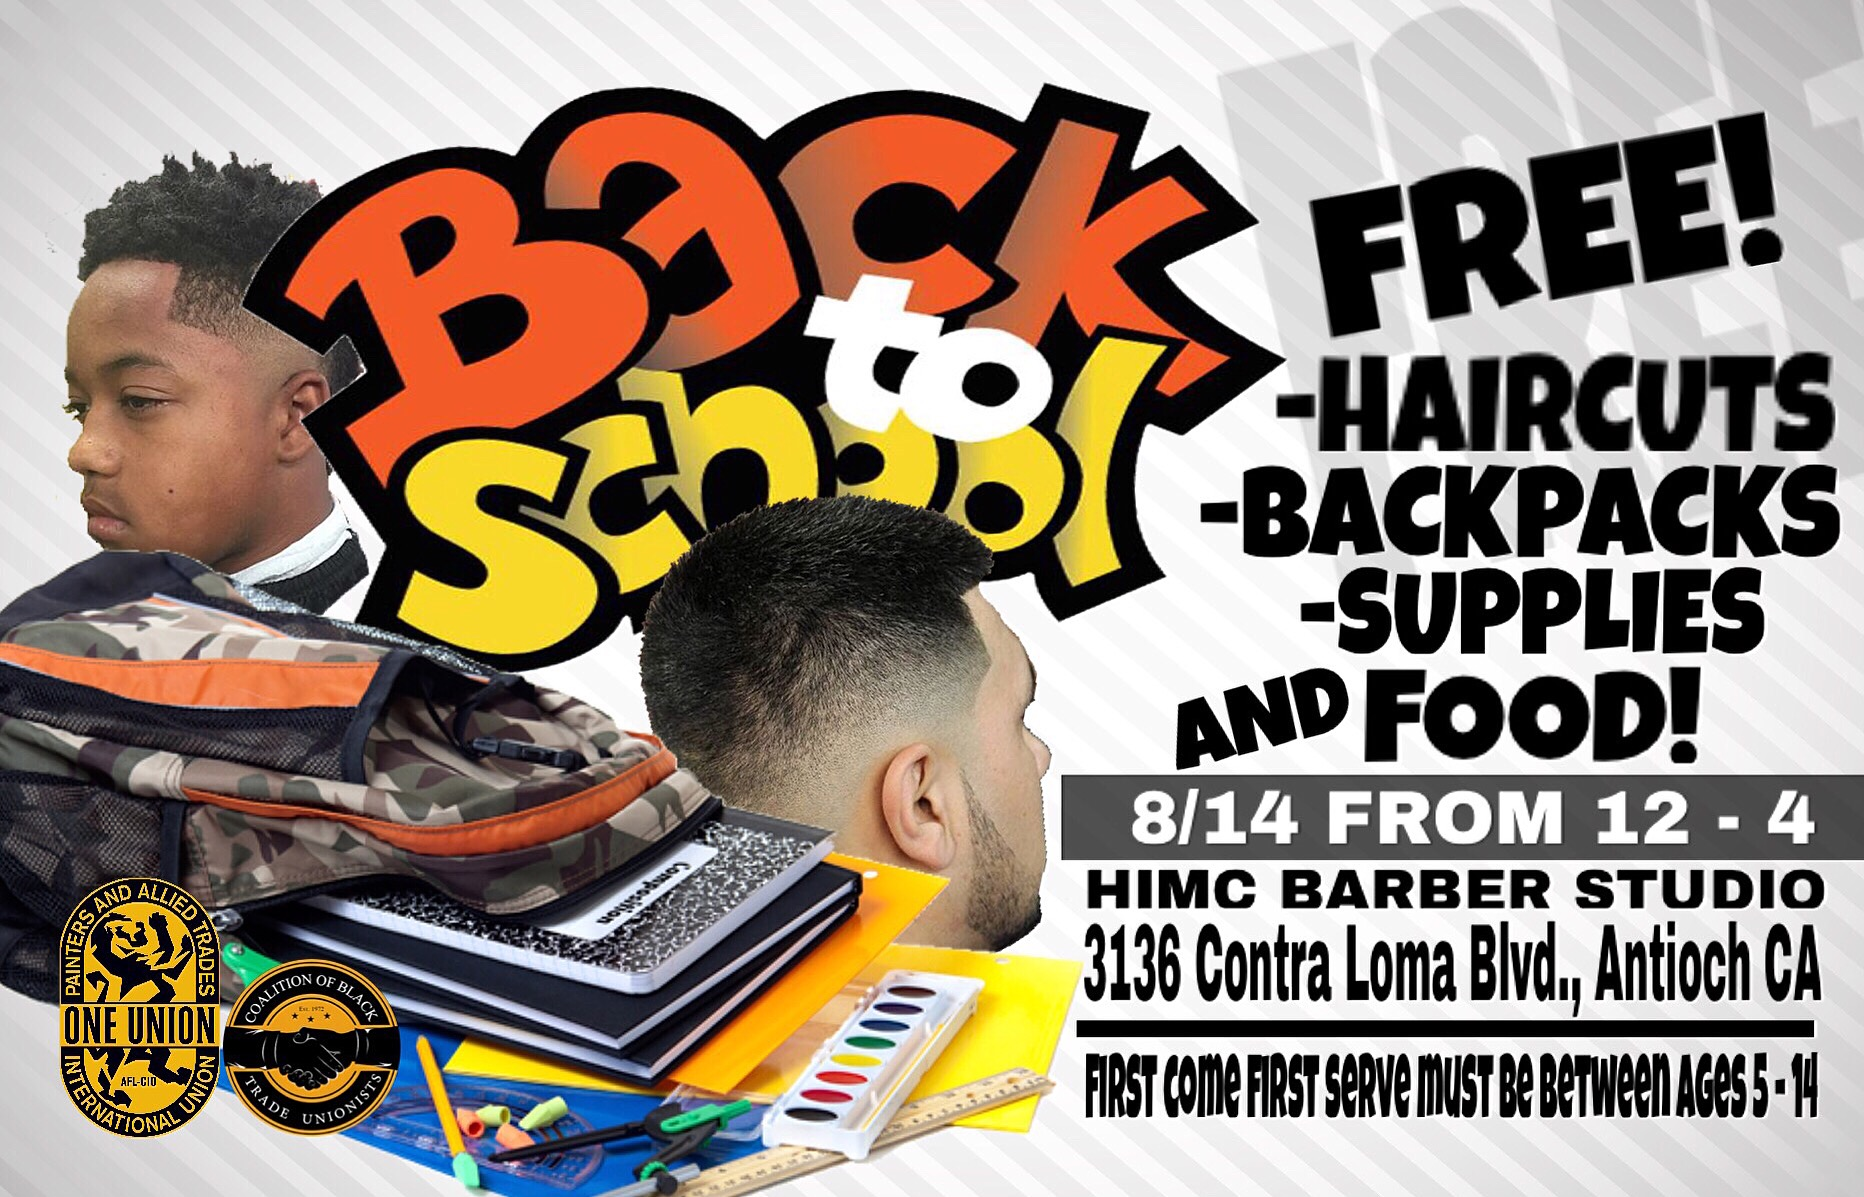 Free Back To School Haircuts Backpacks And Supplies At Antioch